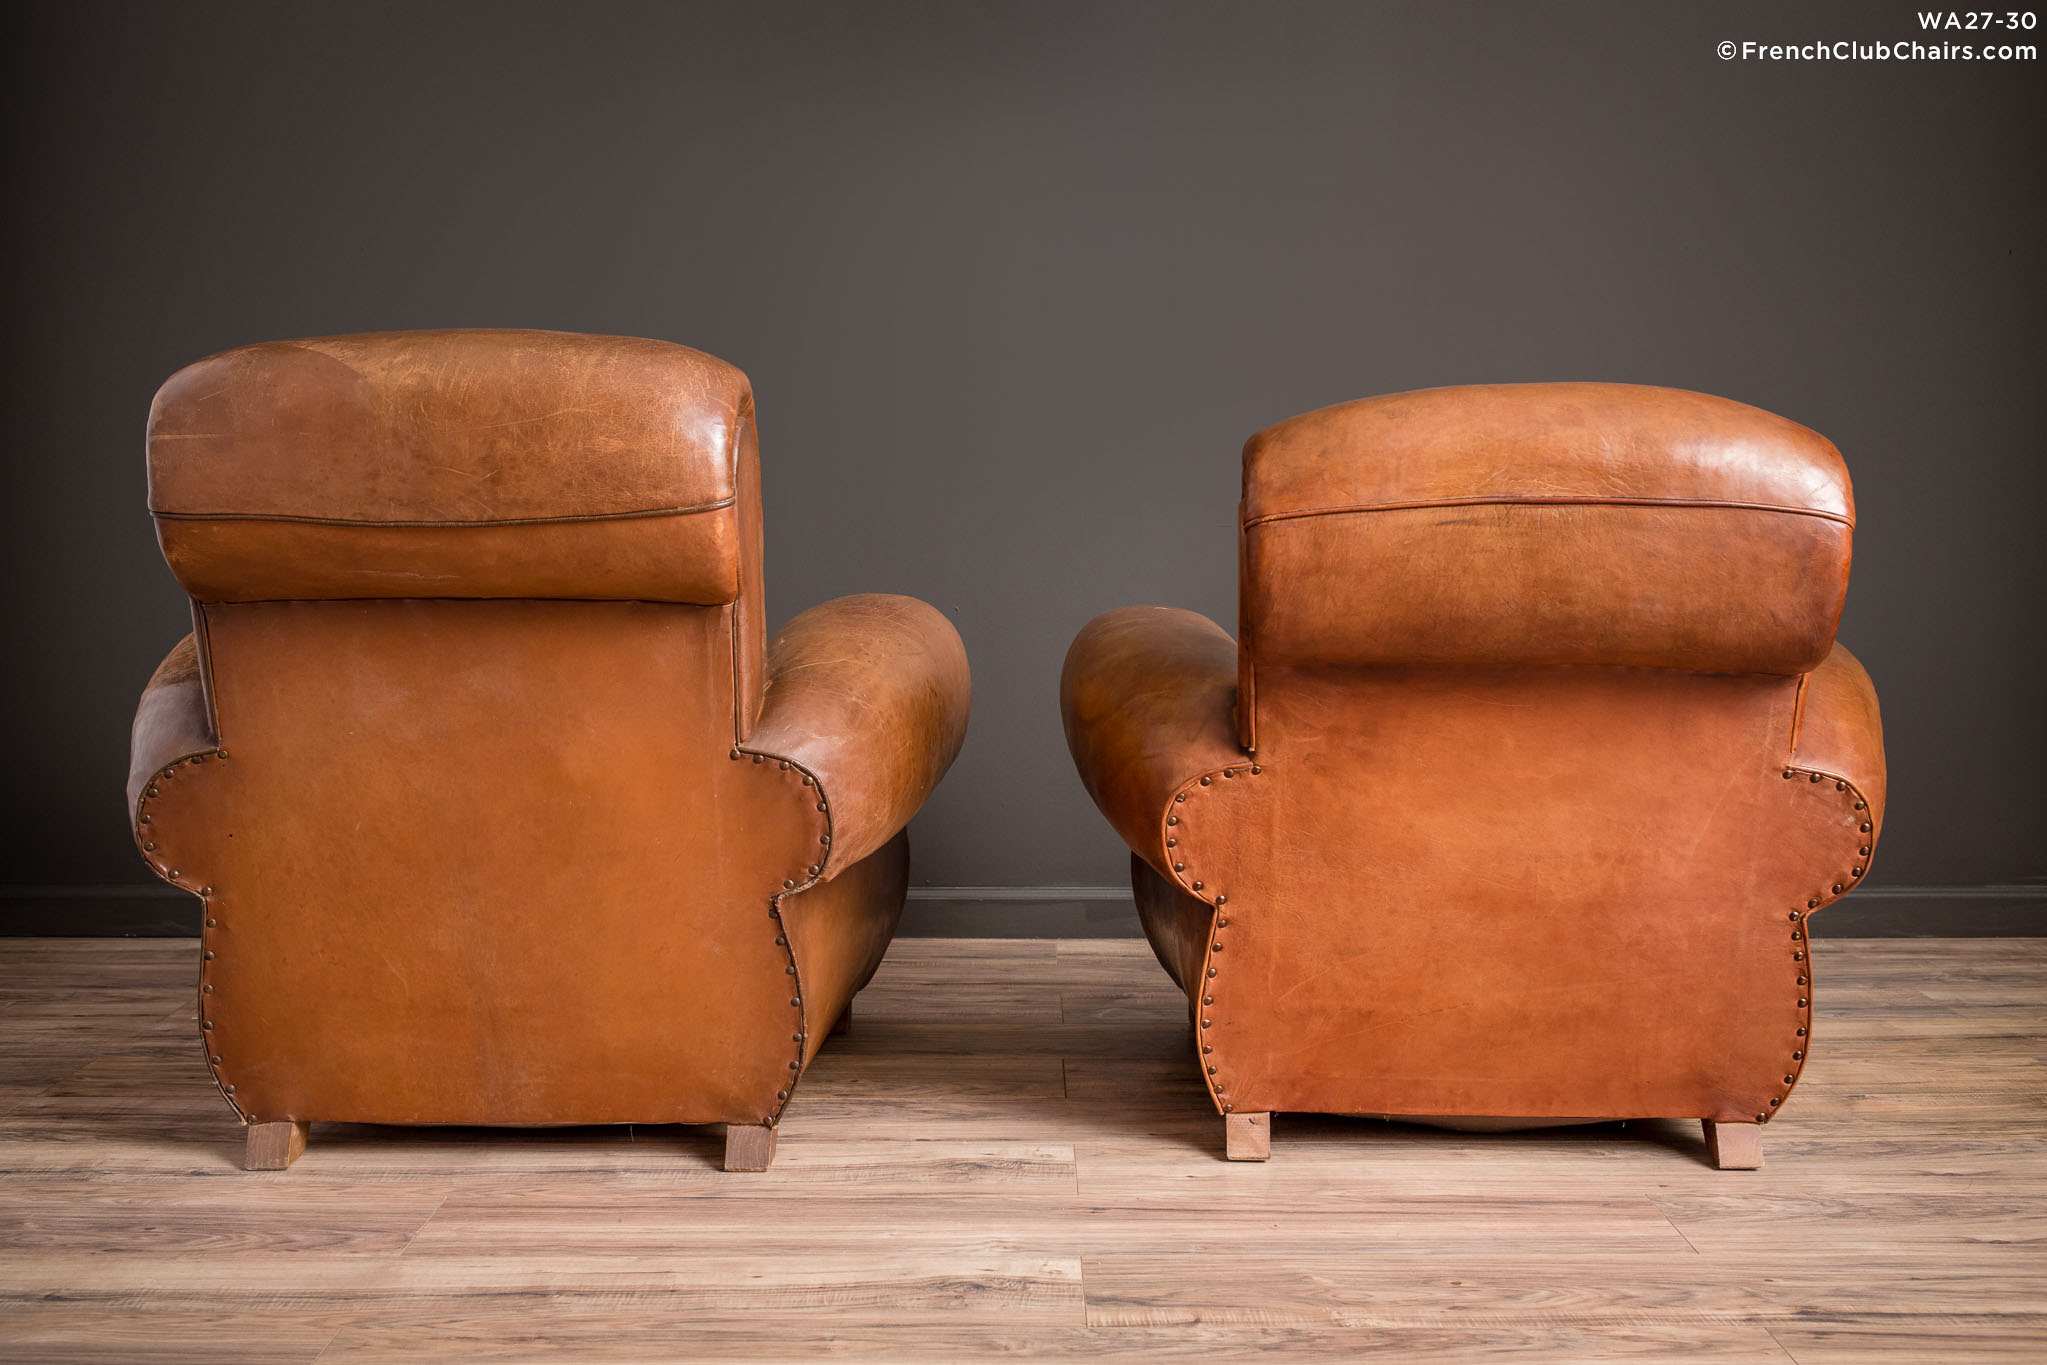 WA_27-30_Giant_Flare_Rollback_Pair_R_2BK-v01-williams-antiks-leather-french-club-chair-wa_fcccom